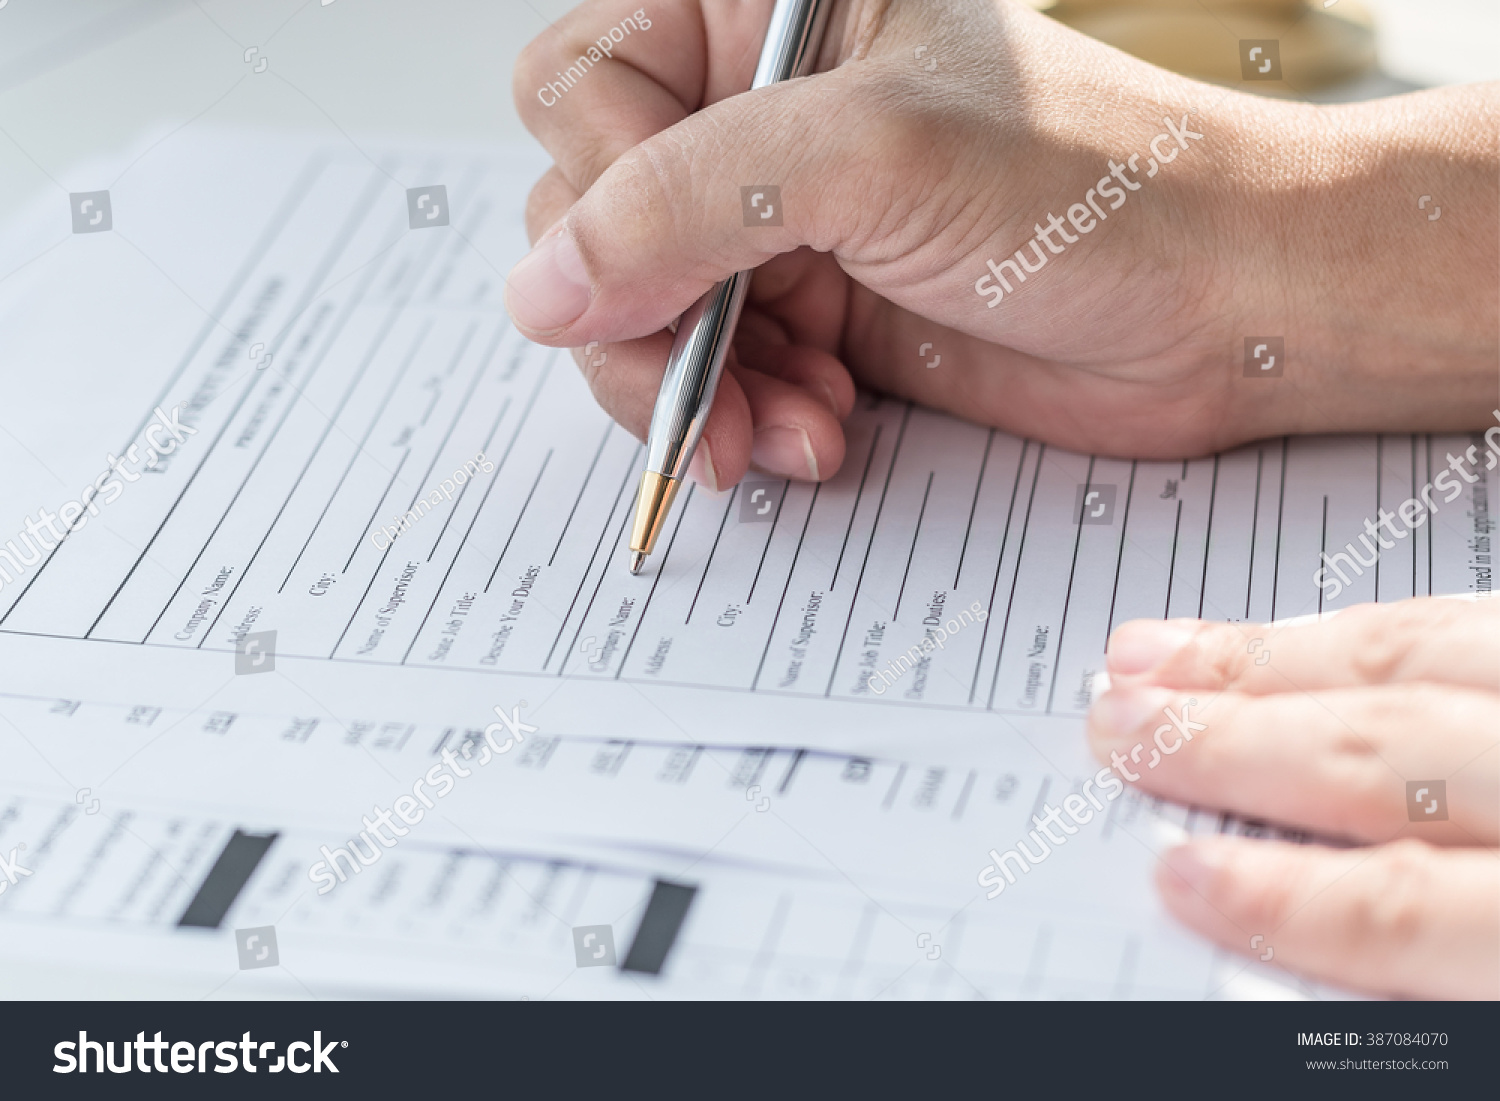 applicant filling in company application form document applying for